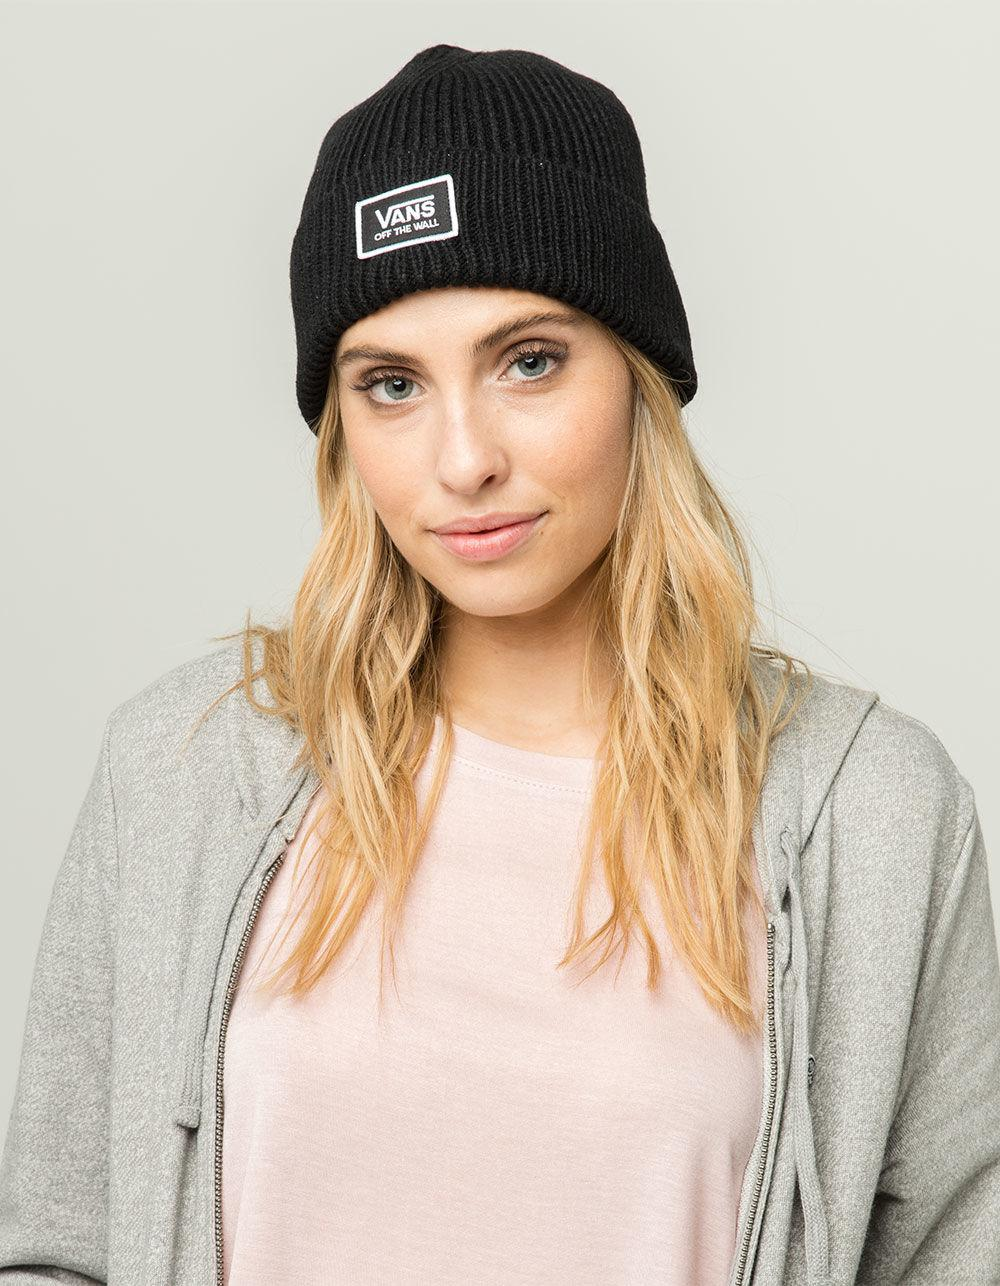 ca4c740f466 Lyst - Vans Falcon Womens Beanie in Black